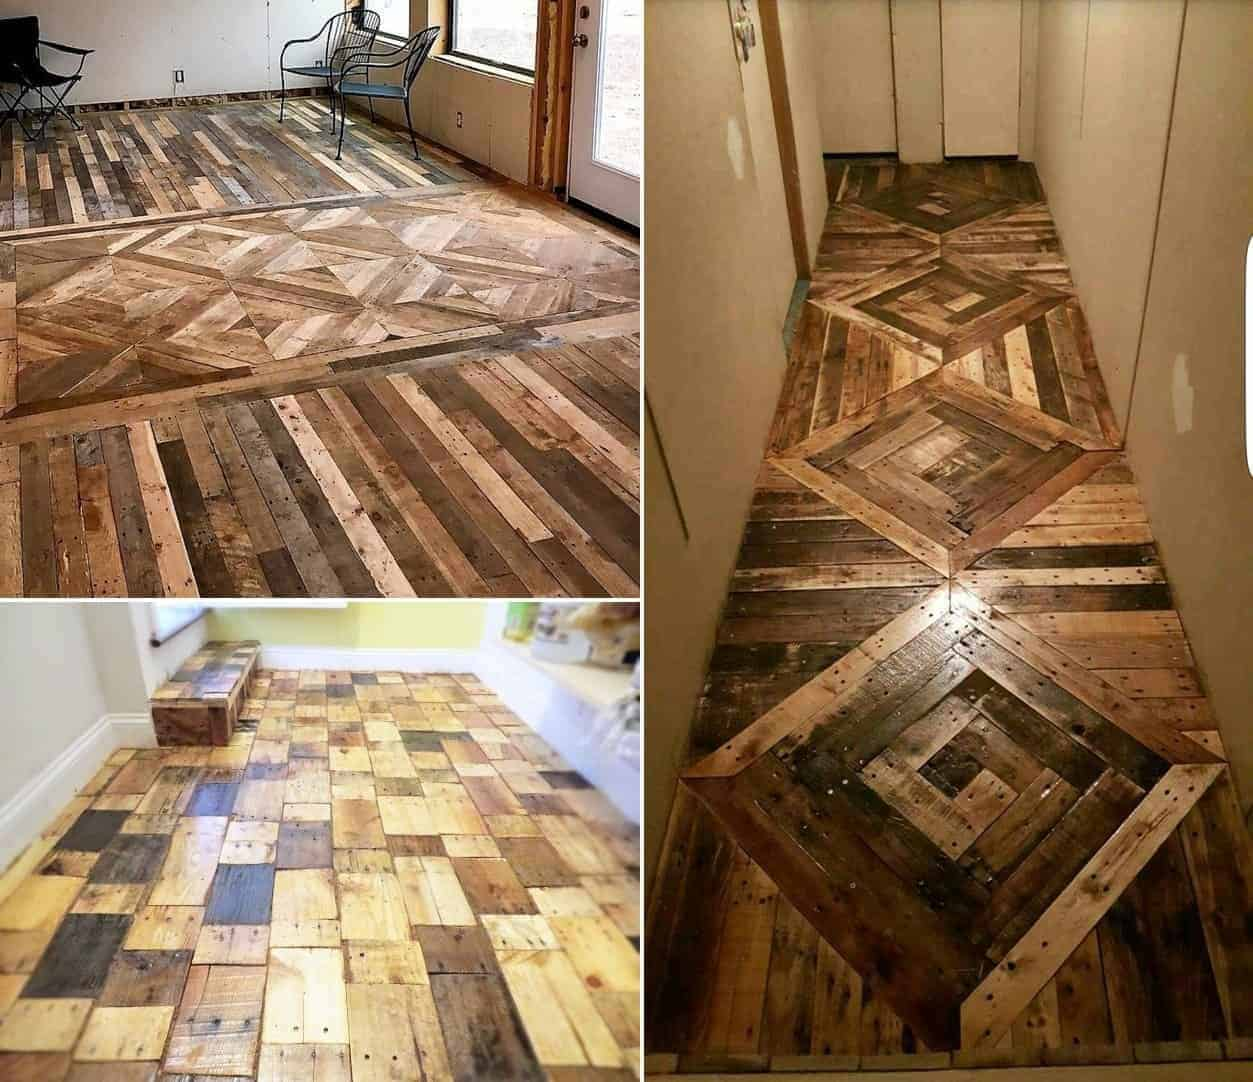 13 Cheap Flooring Ideas Diy Tips Inside Remodel Or Move